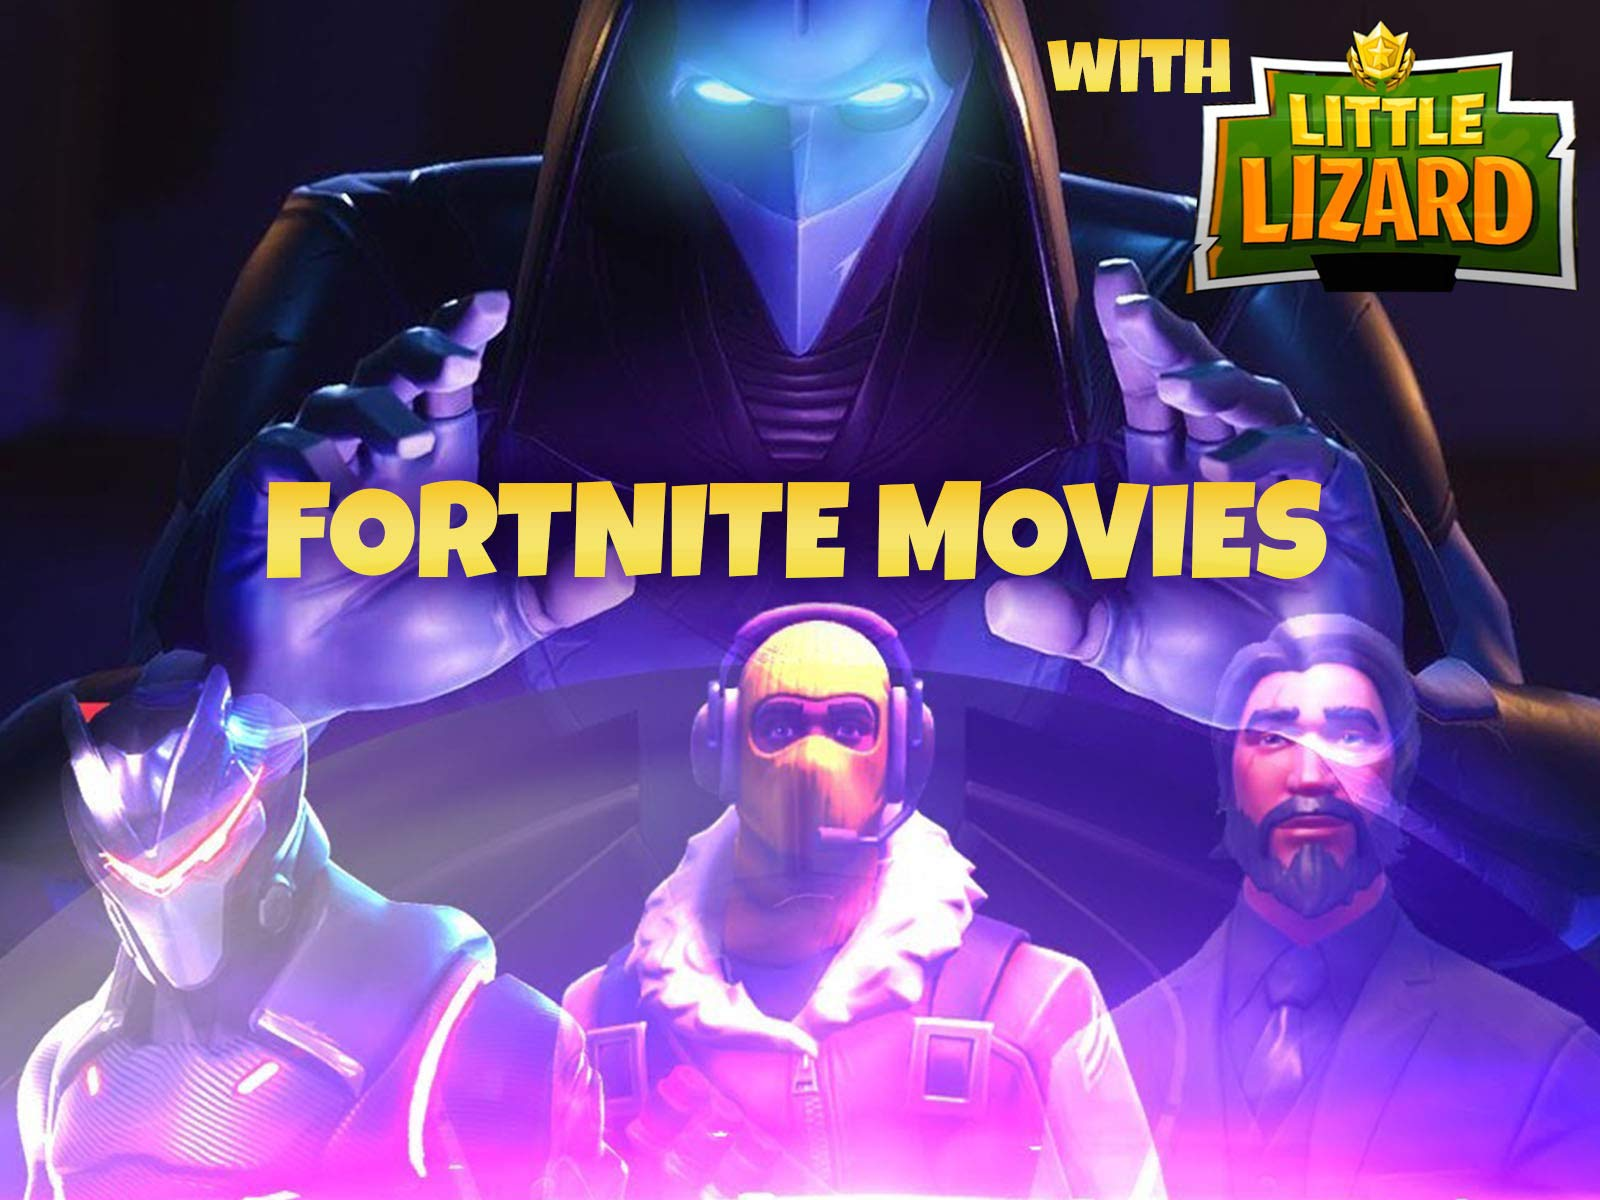 Clip: Fortnite Movies with Little Lizard - Season 2